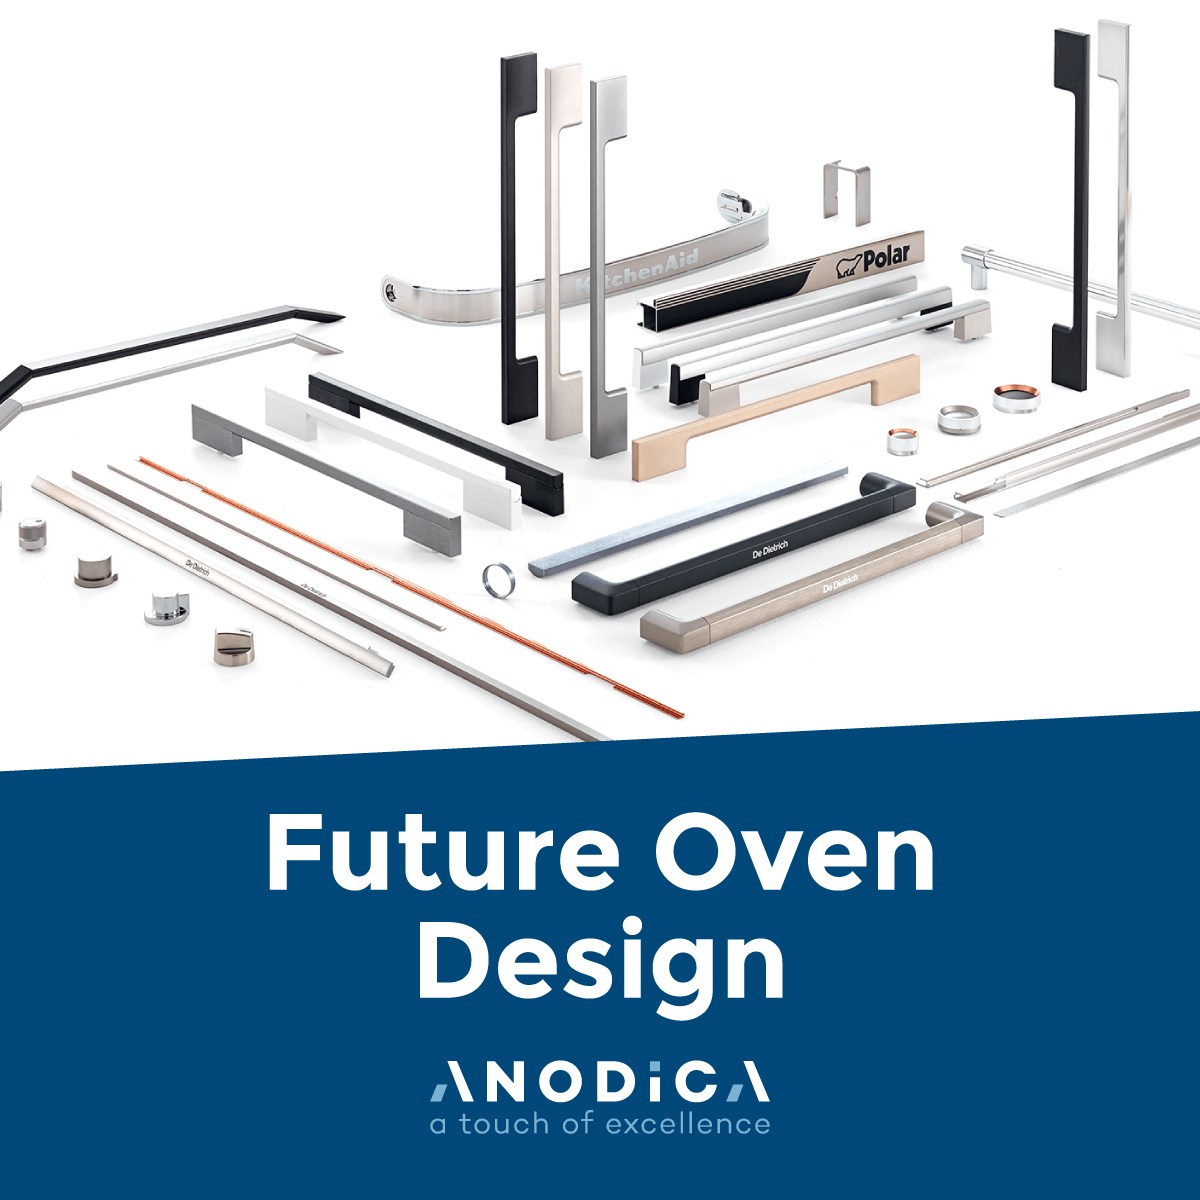 Future Oven Design – Anodica